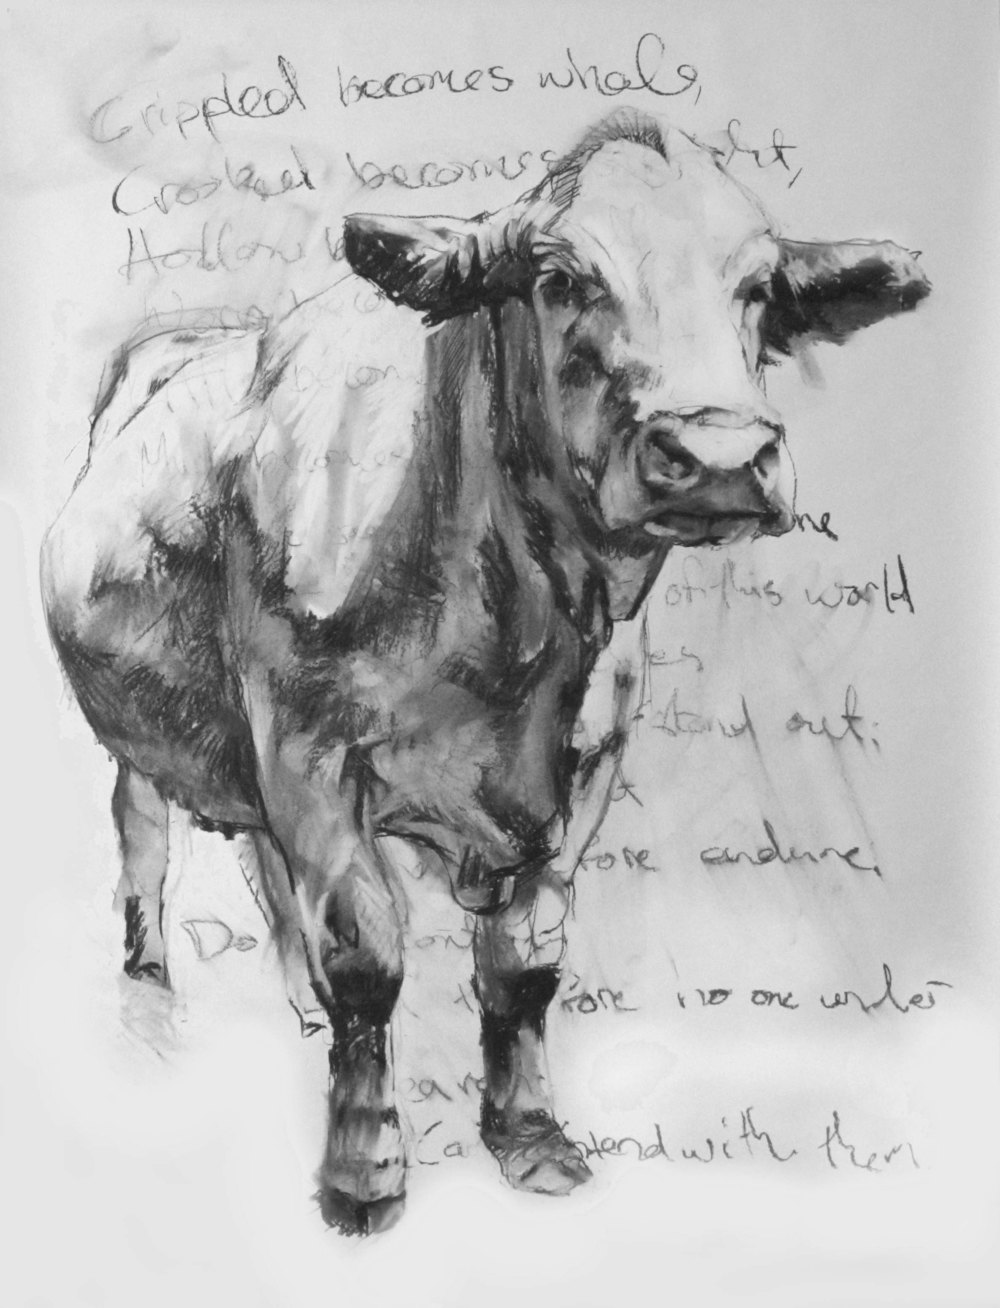 Bert, Charcoal on Paper, 60x42 inches, 2010